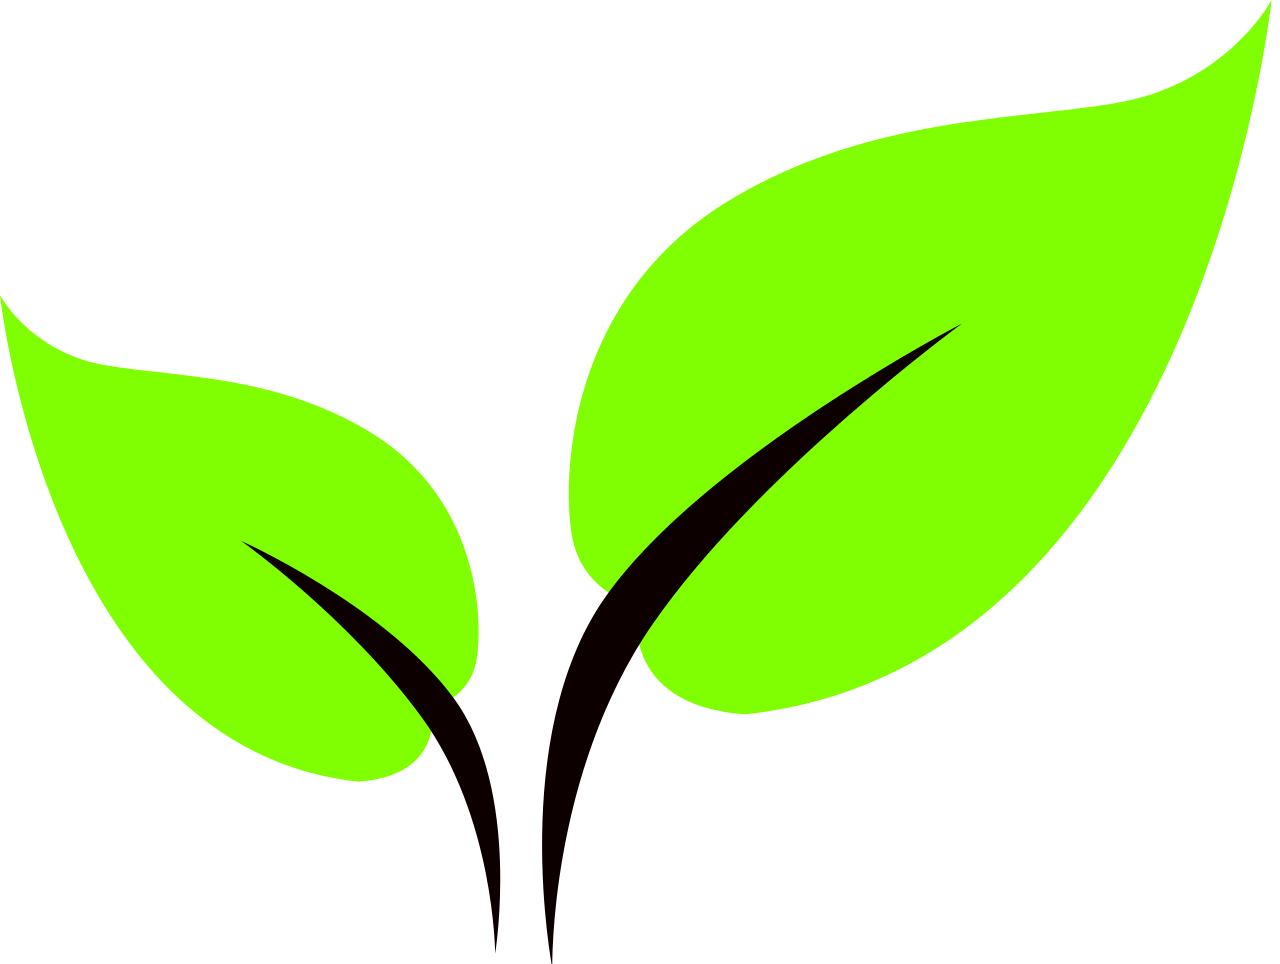 Green leaves clipart png. File leaf icon svg